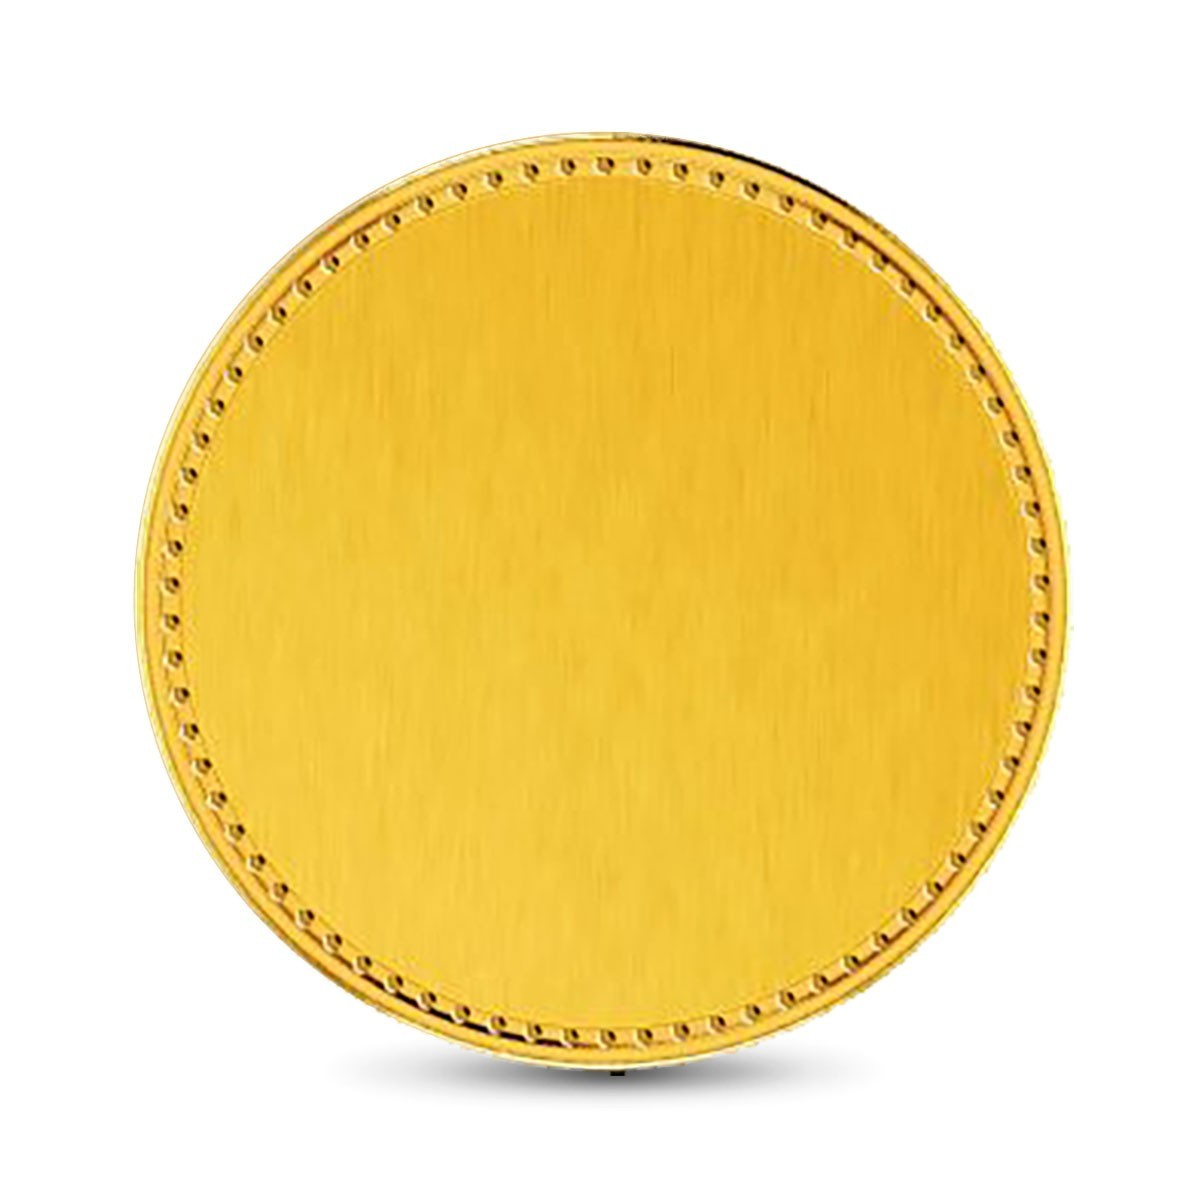 1 Gram 24Kt Plain Gold Coin